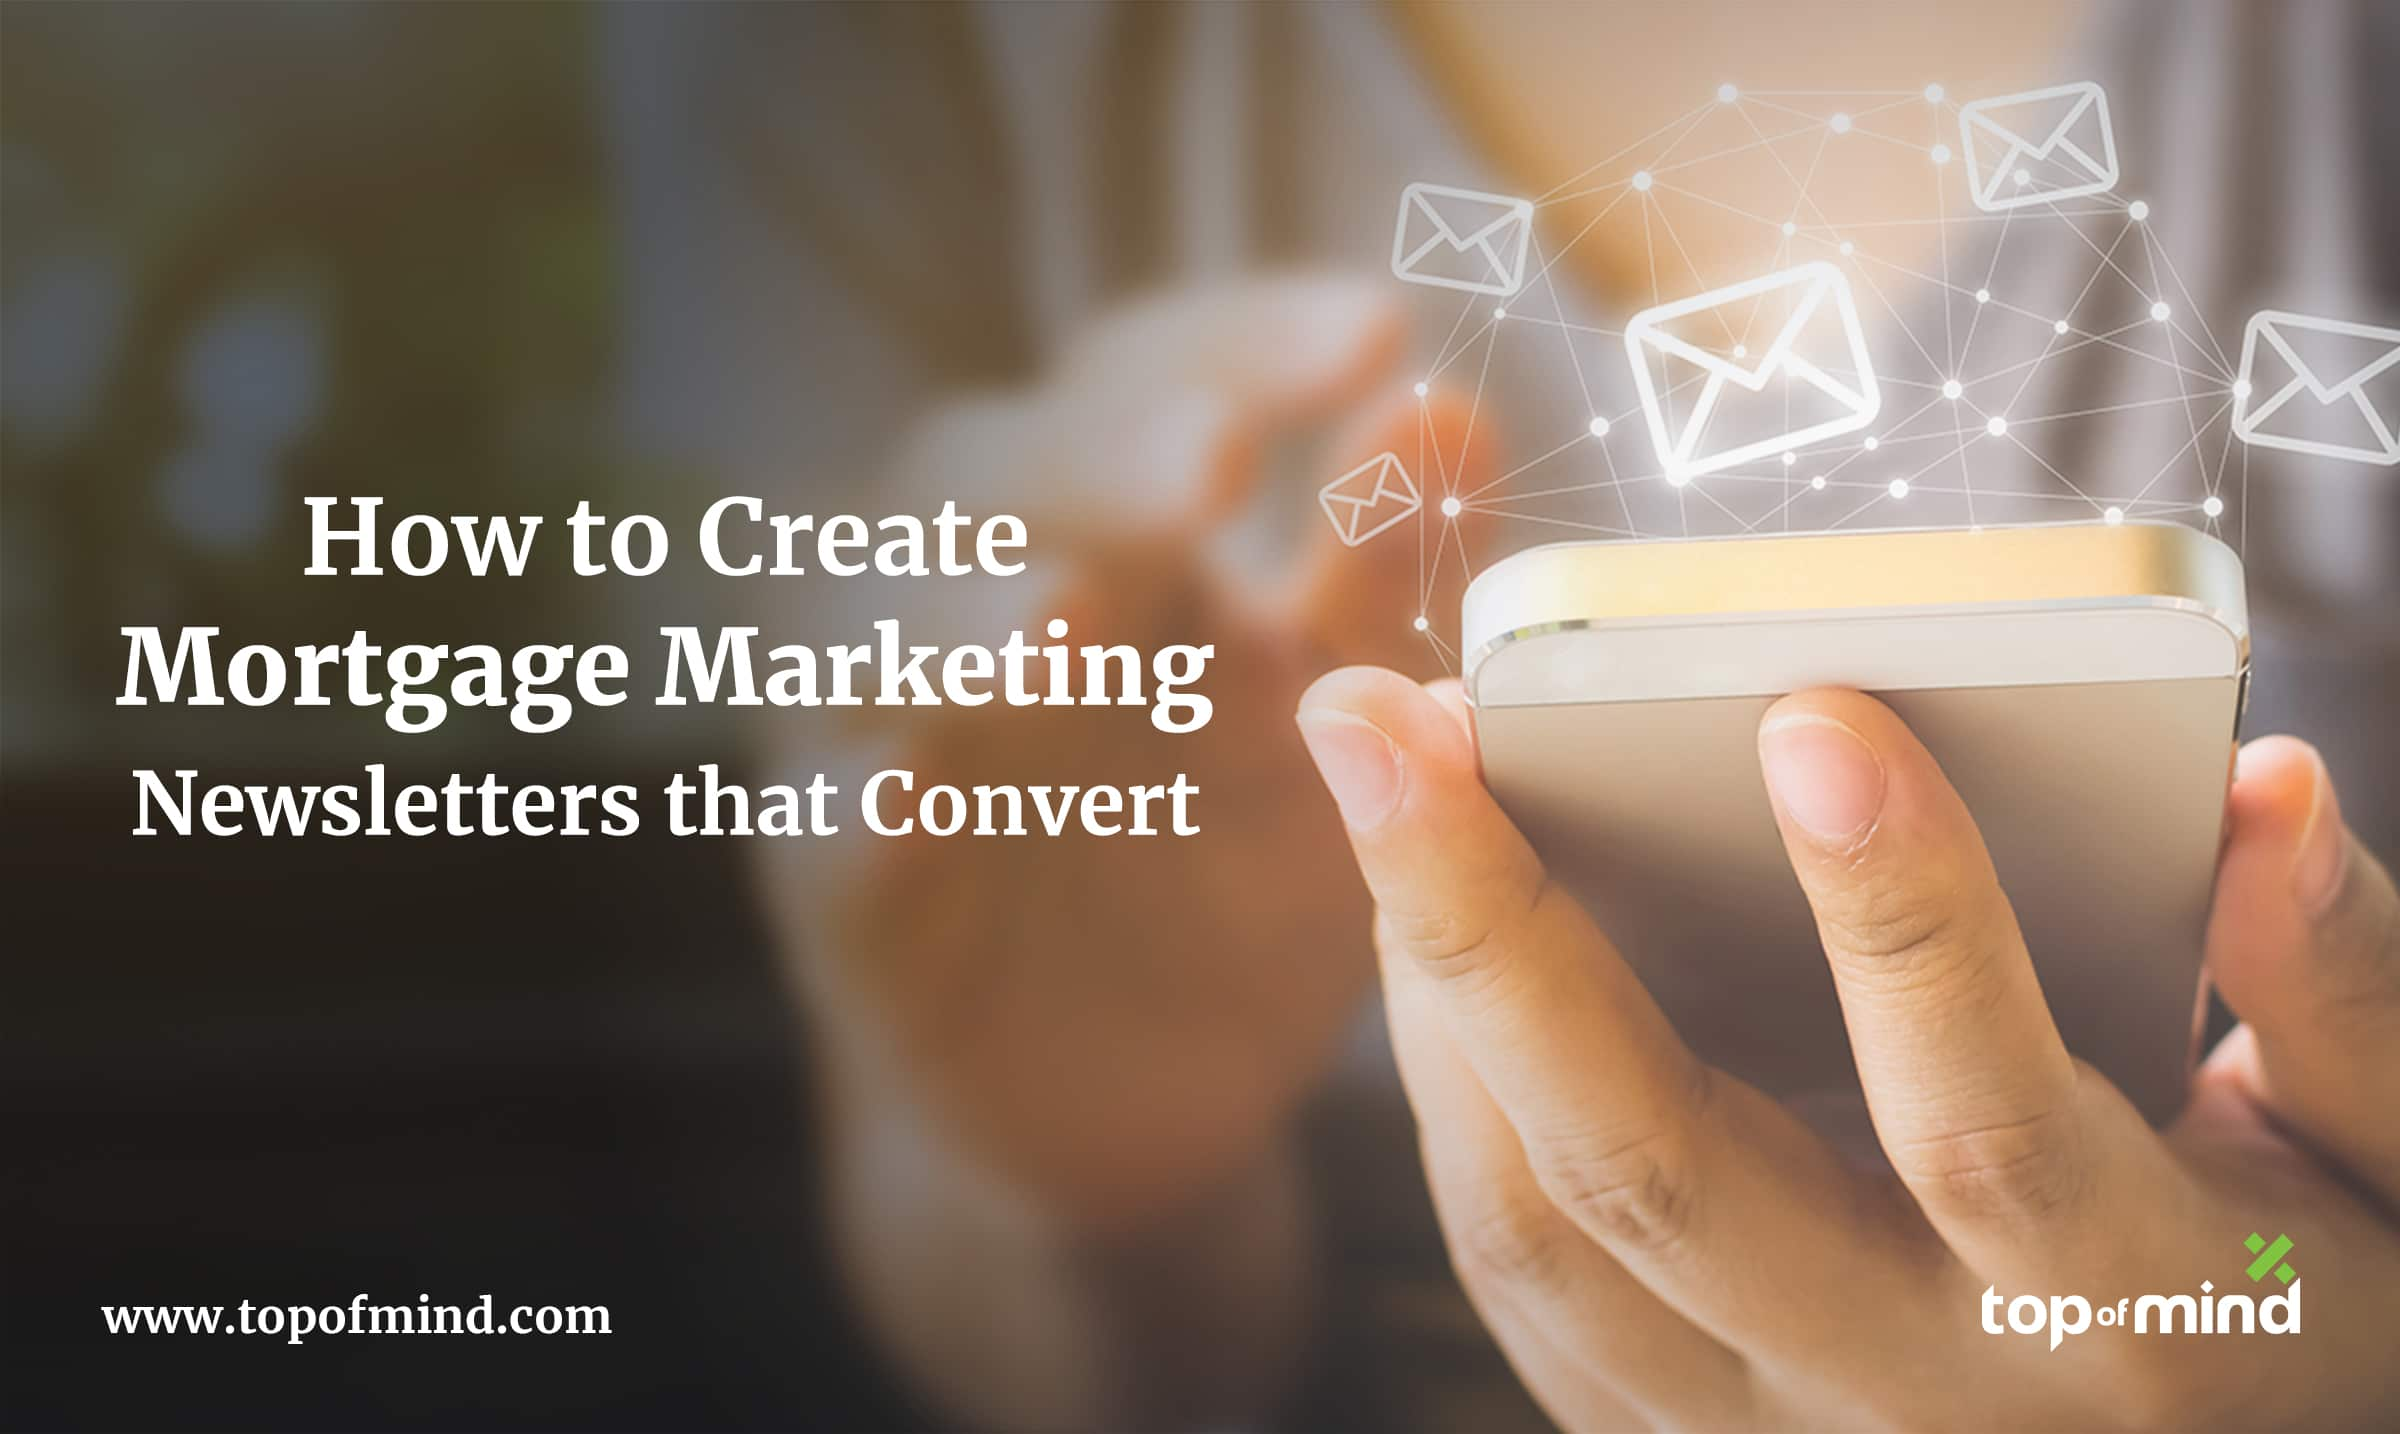 how-to-create-mortgage-marketing-newsletters-that-convert